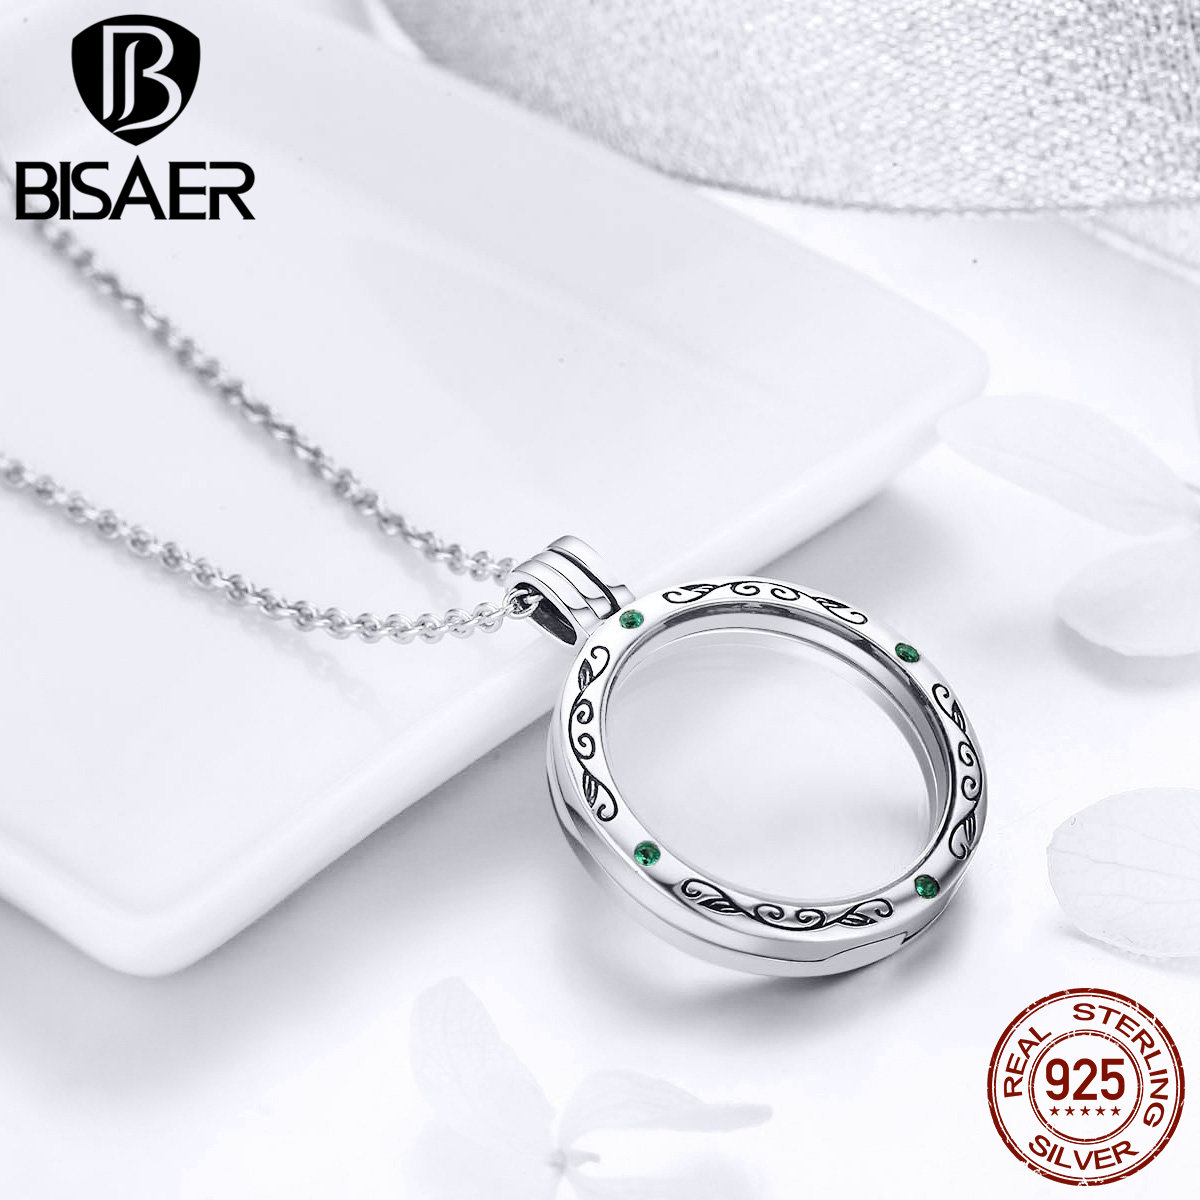 Authentic 100% 925 Sterling Silver Round Power Box Petite Memories Long Chain Necklace Floating Locket Necklace DIY Jewelry authentic 100% 925 sterling silver round power box petite memories long chain necklace floating locket necklace diy jewelry